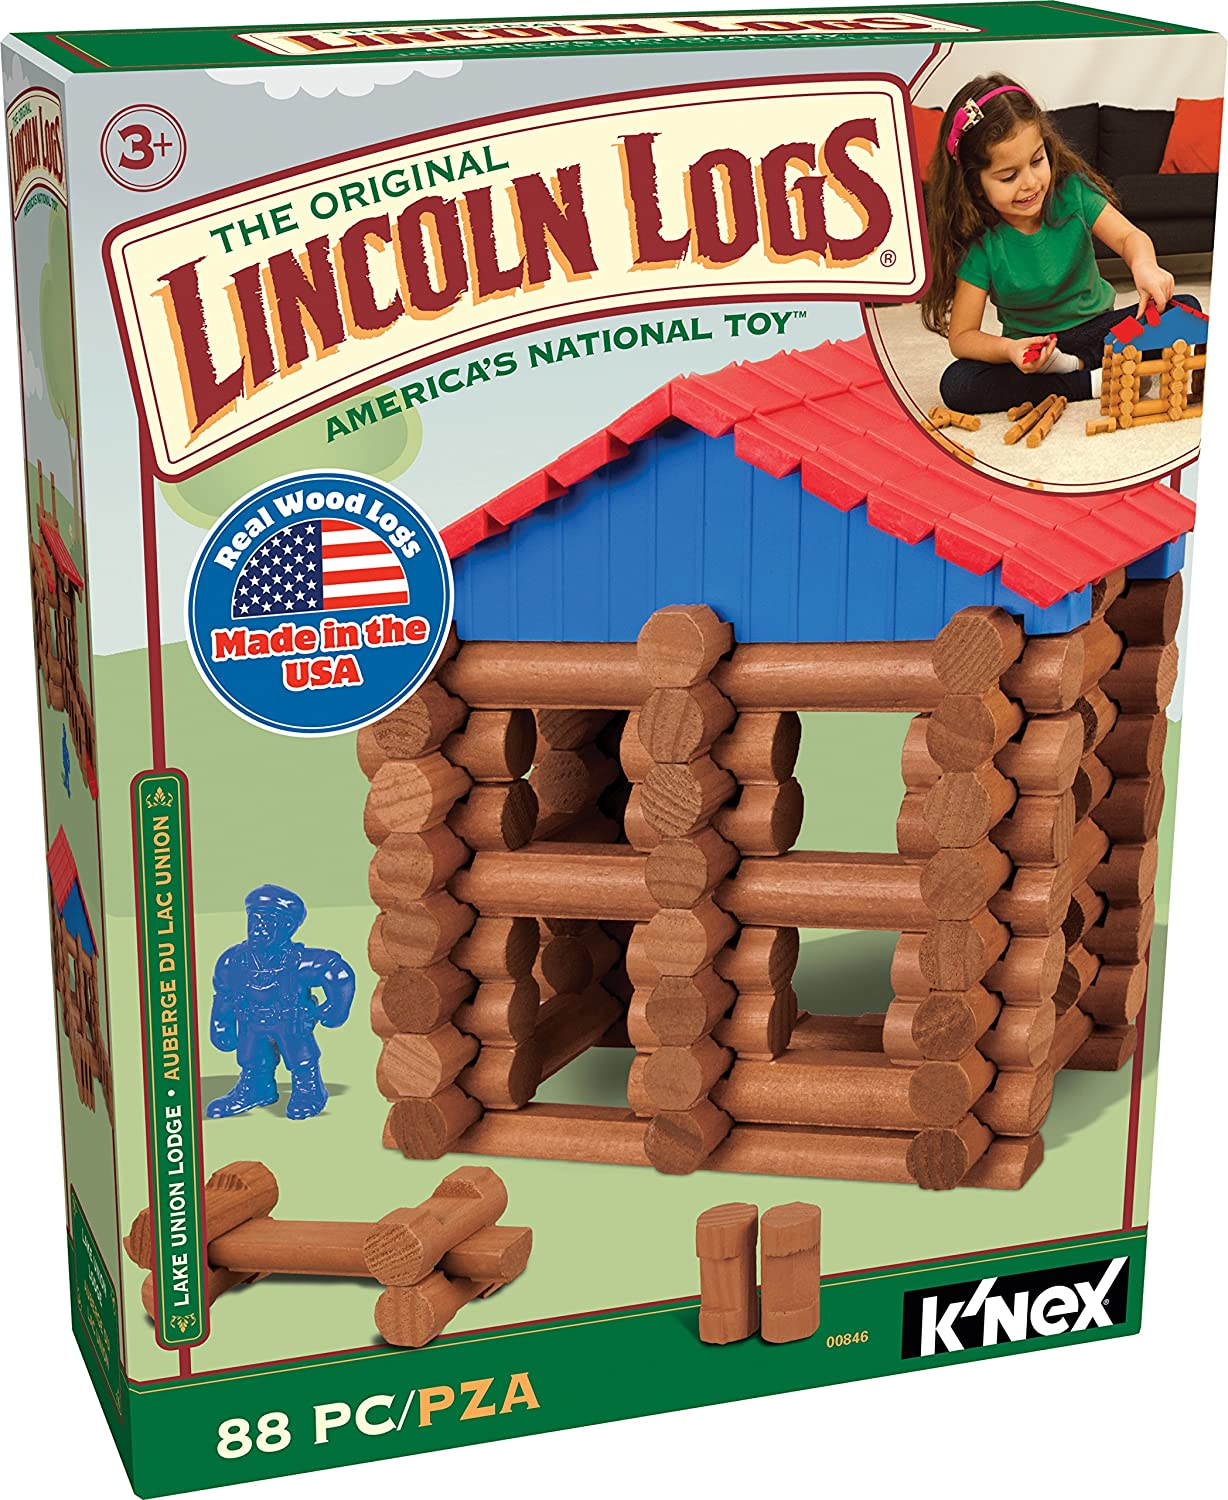 LINCOLN LOGS – Lake Union Lodge – 88 Pieces –